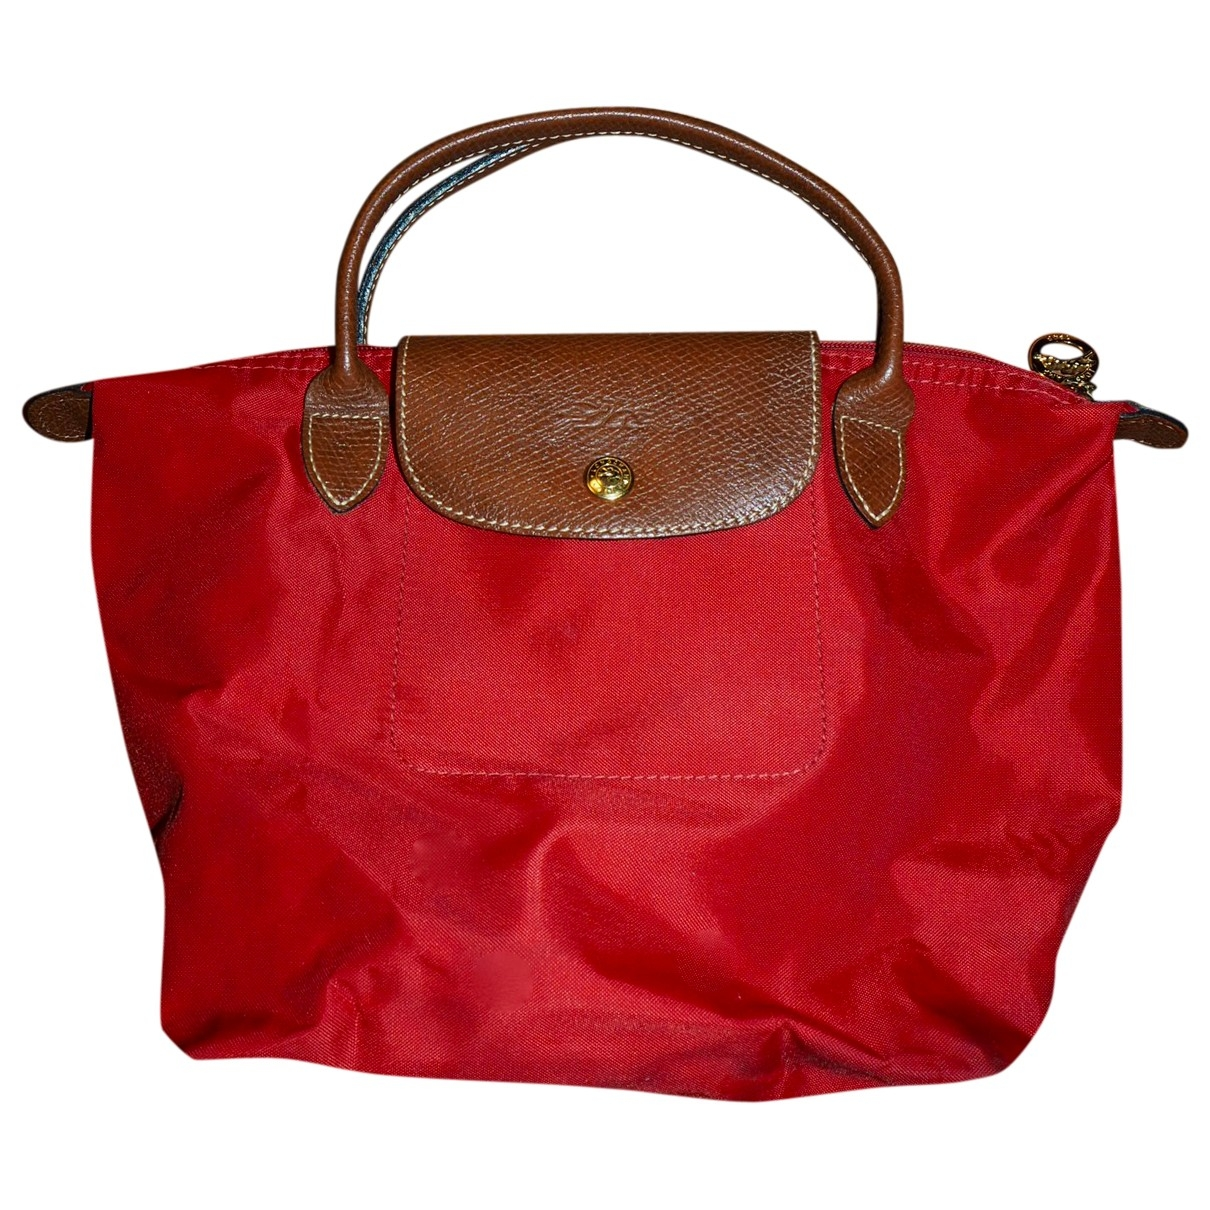 Longchamp Pliage  Handtasche in  Rot Synthetik